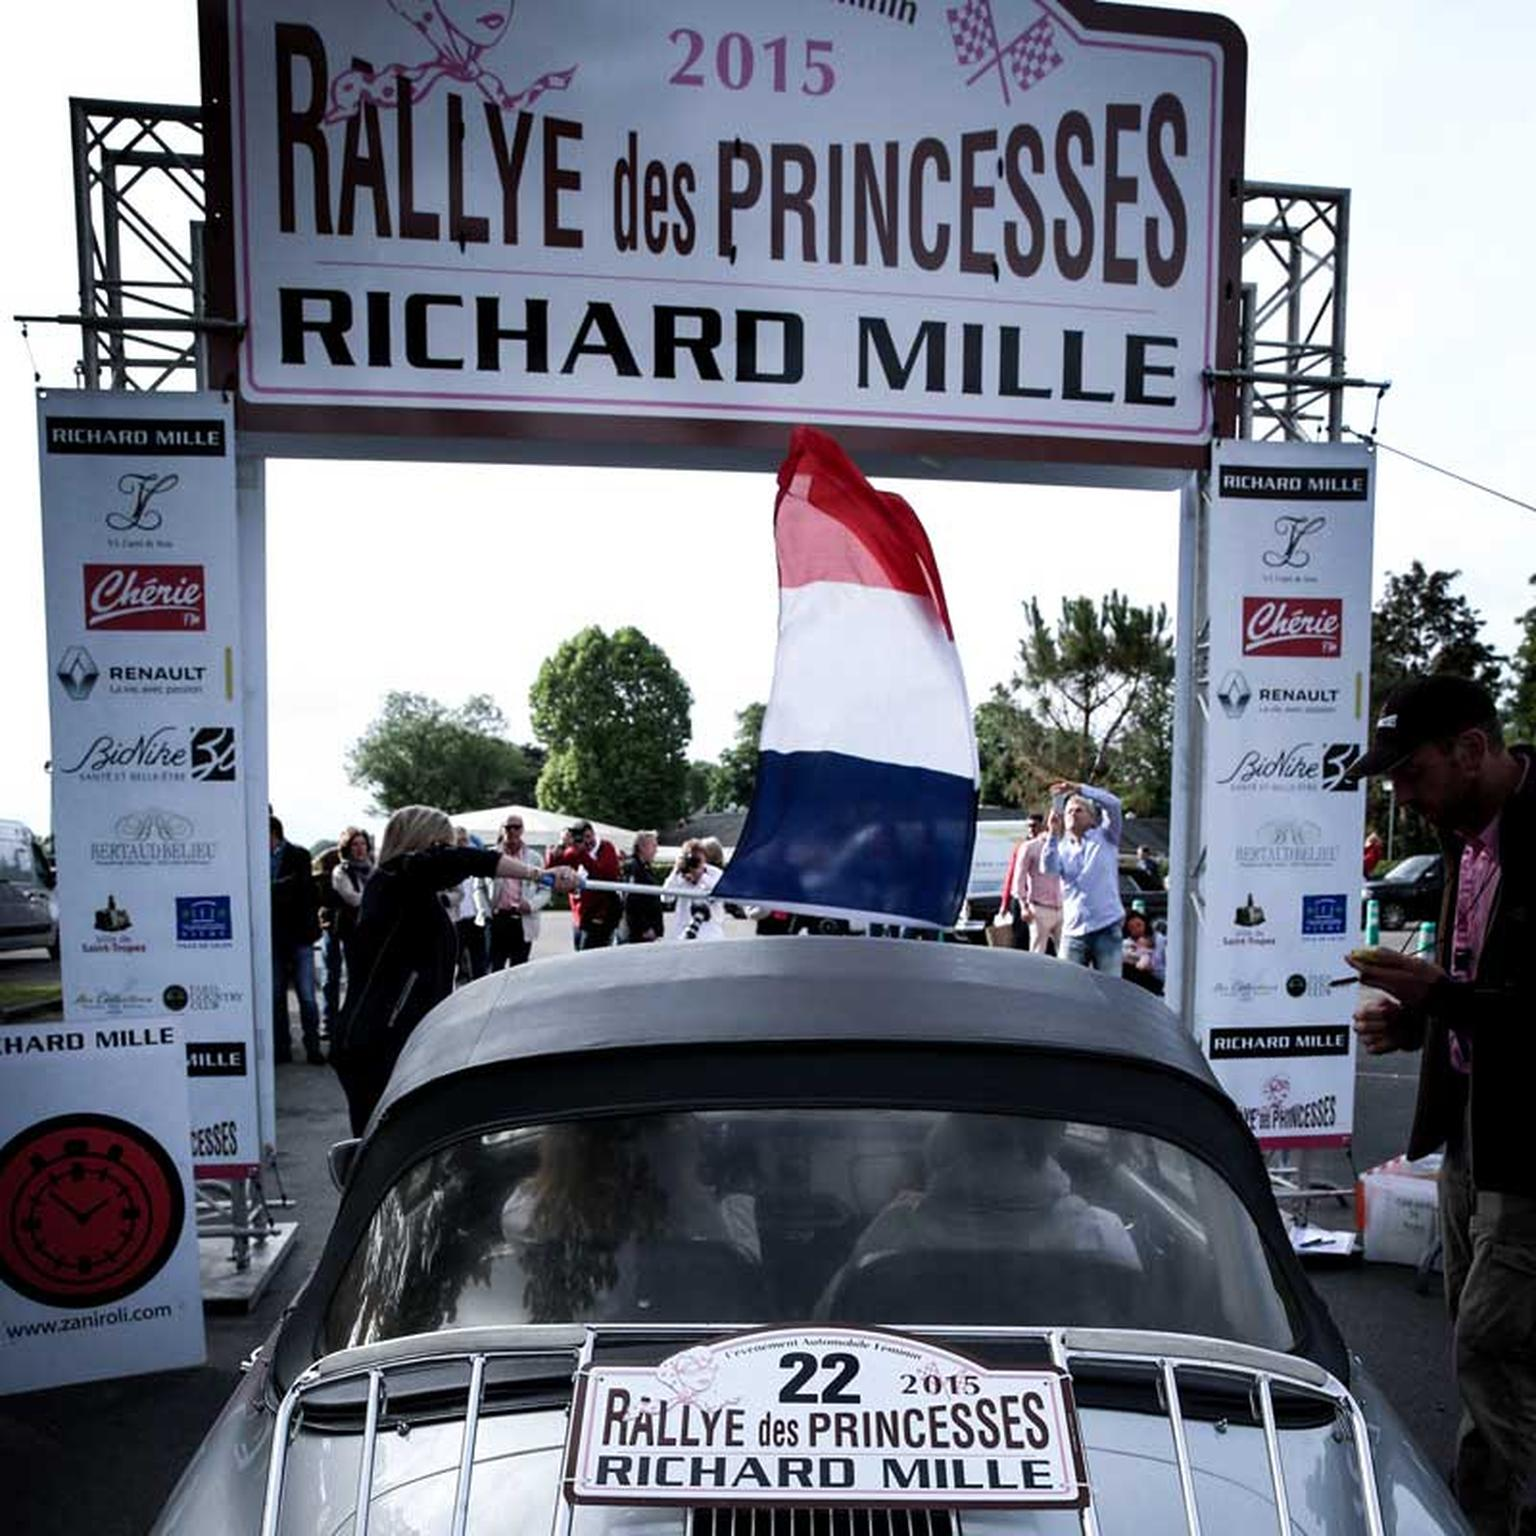 Richard Mille at Rallye des Princesses, image courtesy of Didier Gourdon